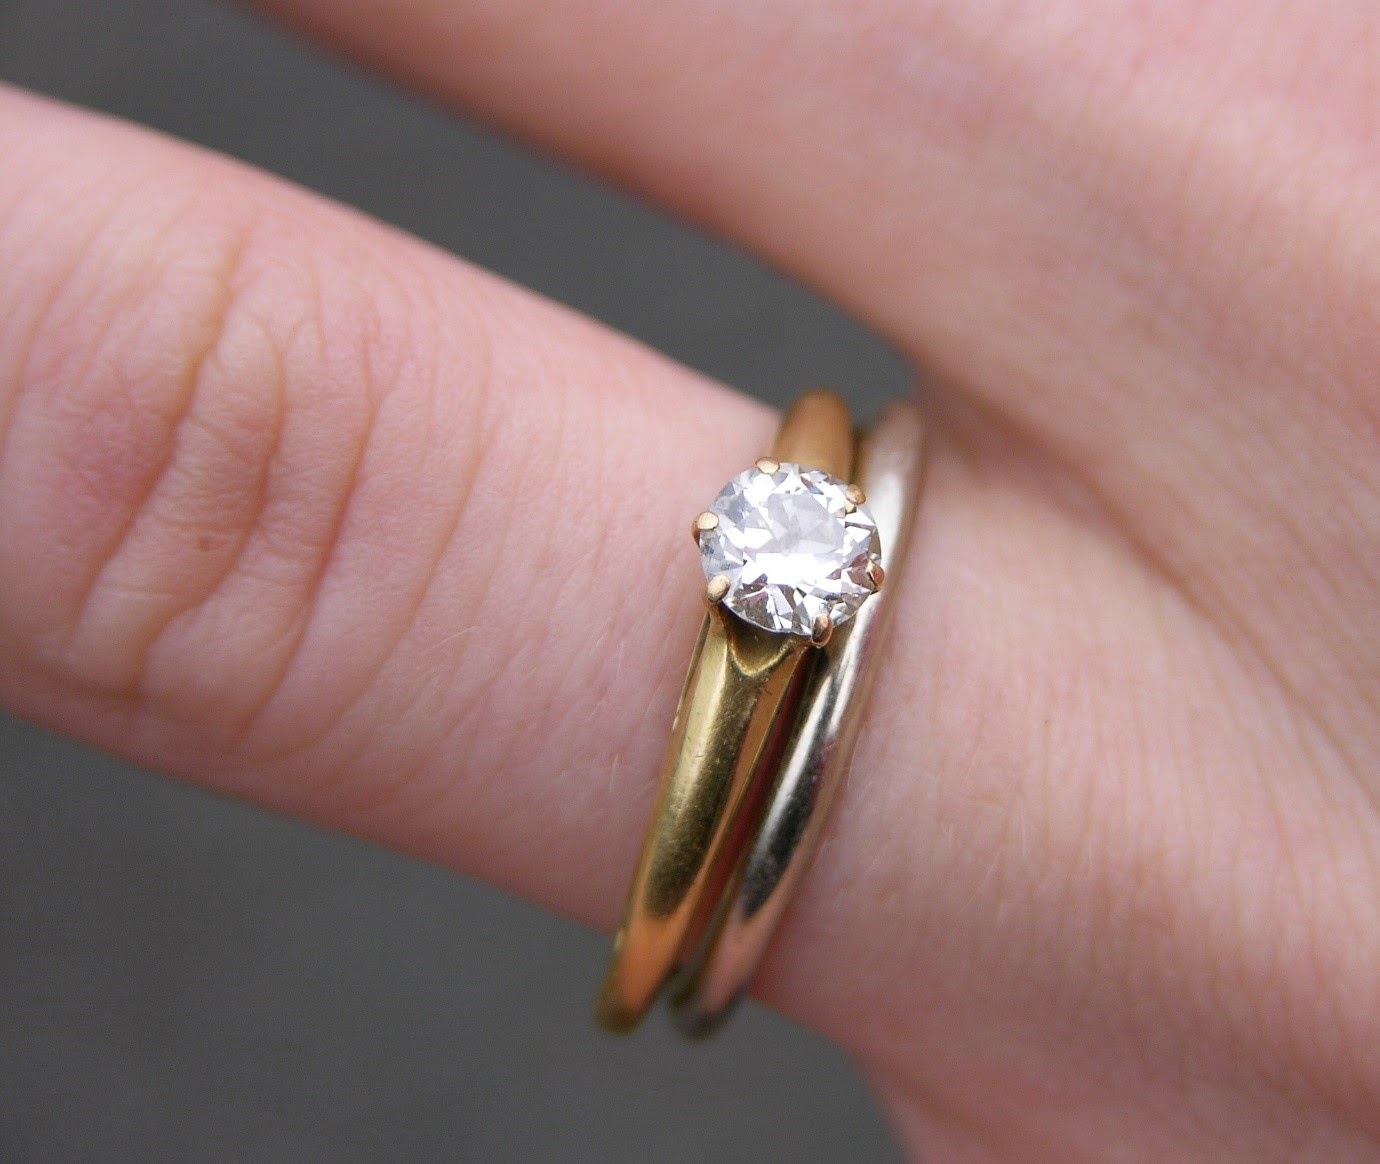 the most iconic wedding rings of all stacked wedding rings set Mel Ferrer gifted Audrey Hepburn a stackable wedding ring containing two different bands in rose gold and white gold Always a trendsetter she helped make